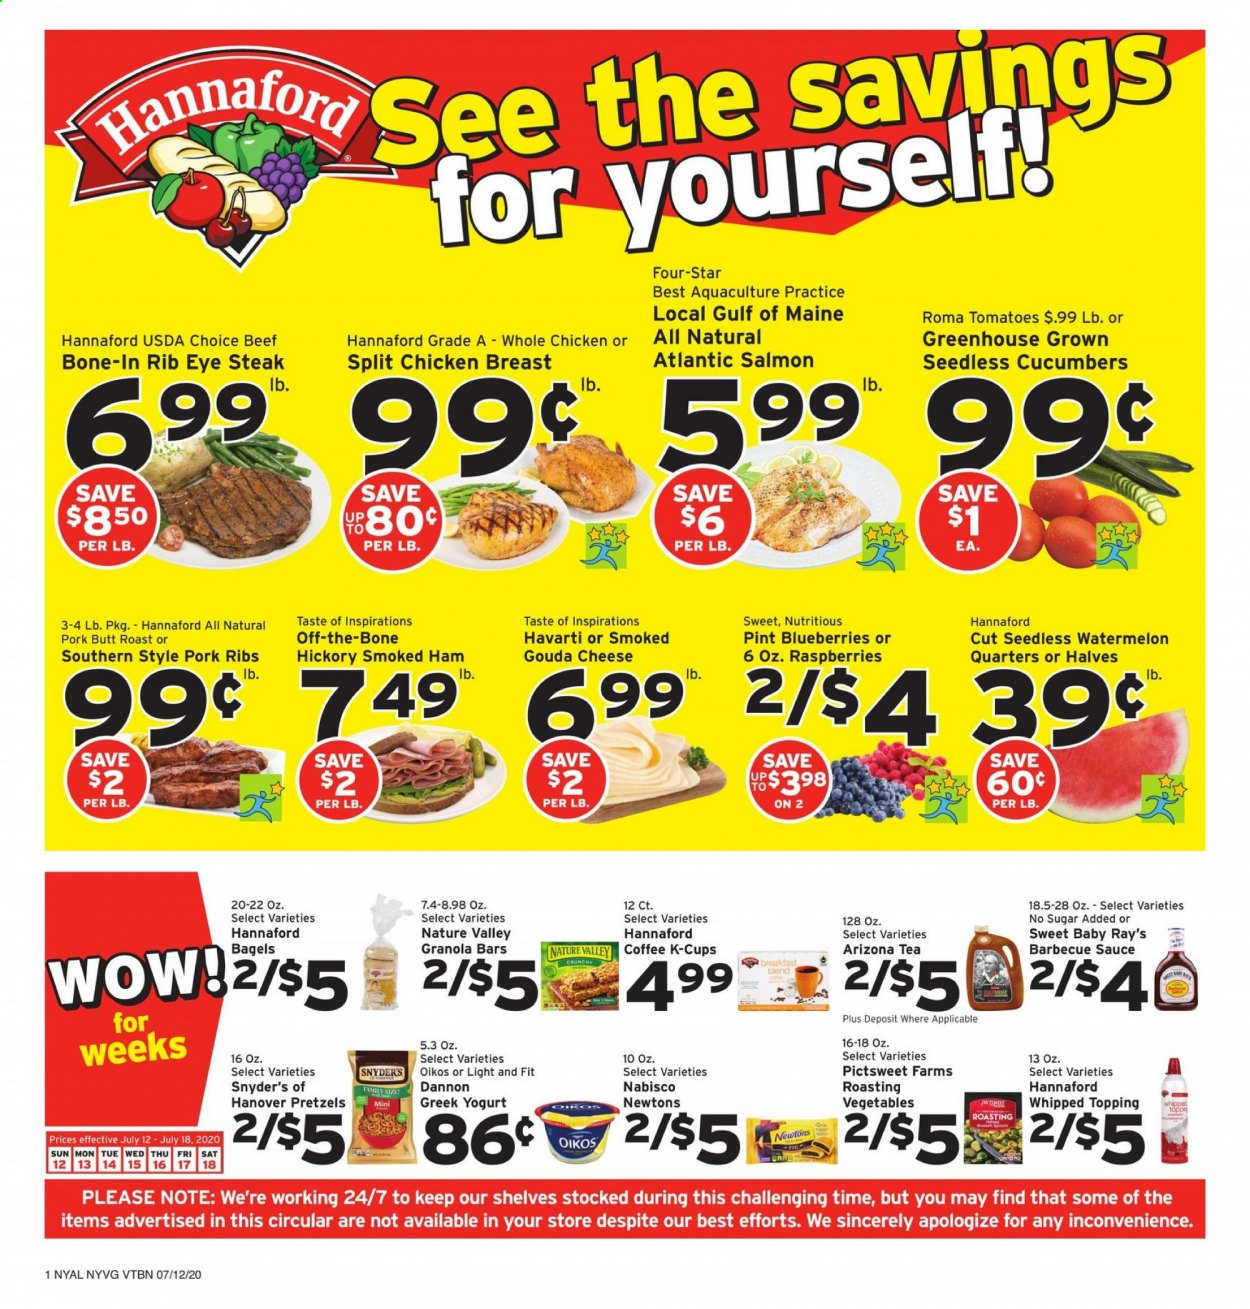 Hannaford Flyer - 07.12.2020 - 07.18.2020 - Sales products - bagels, barbecue sauce, beef meat, blueberries, coffee, cucumbers, gouda, granola, granola bars, greek yogurt, greenhouse, raspberries, salmon, shelf, shelves, sugar, tea, tomatoes, watermelon, whole chicken, ham, havarti cheese, pork meat, pork ribs, pretzels, chicken, chicken breast, steak, cheese, smoked ham, Vegetables, topping, sauce, ribs. Page 1.